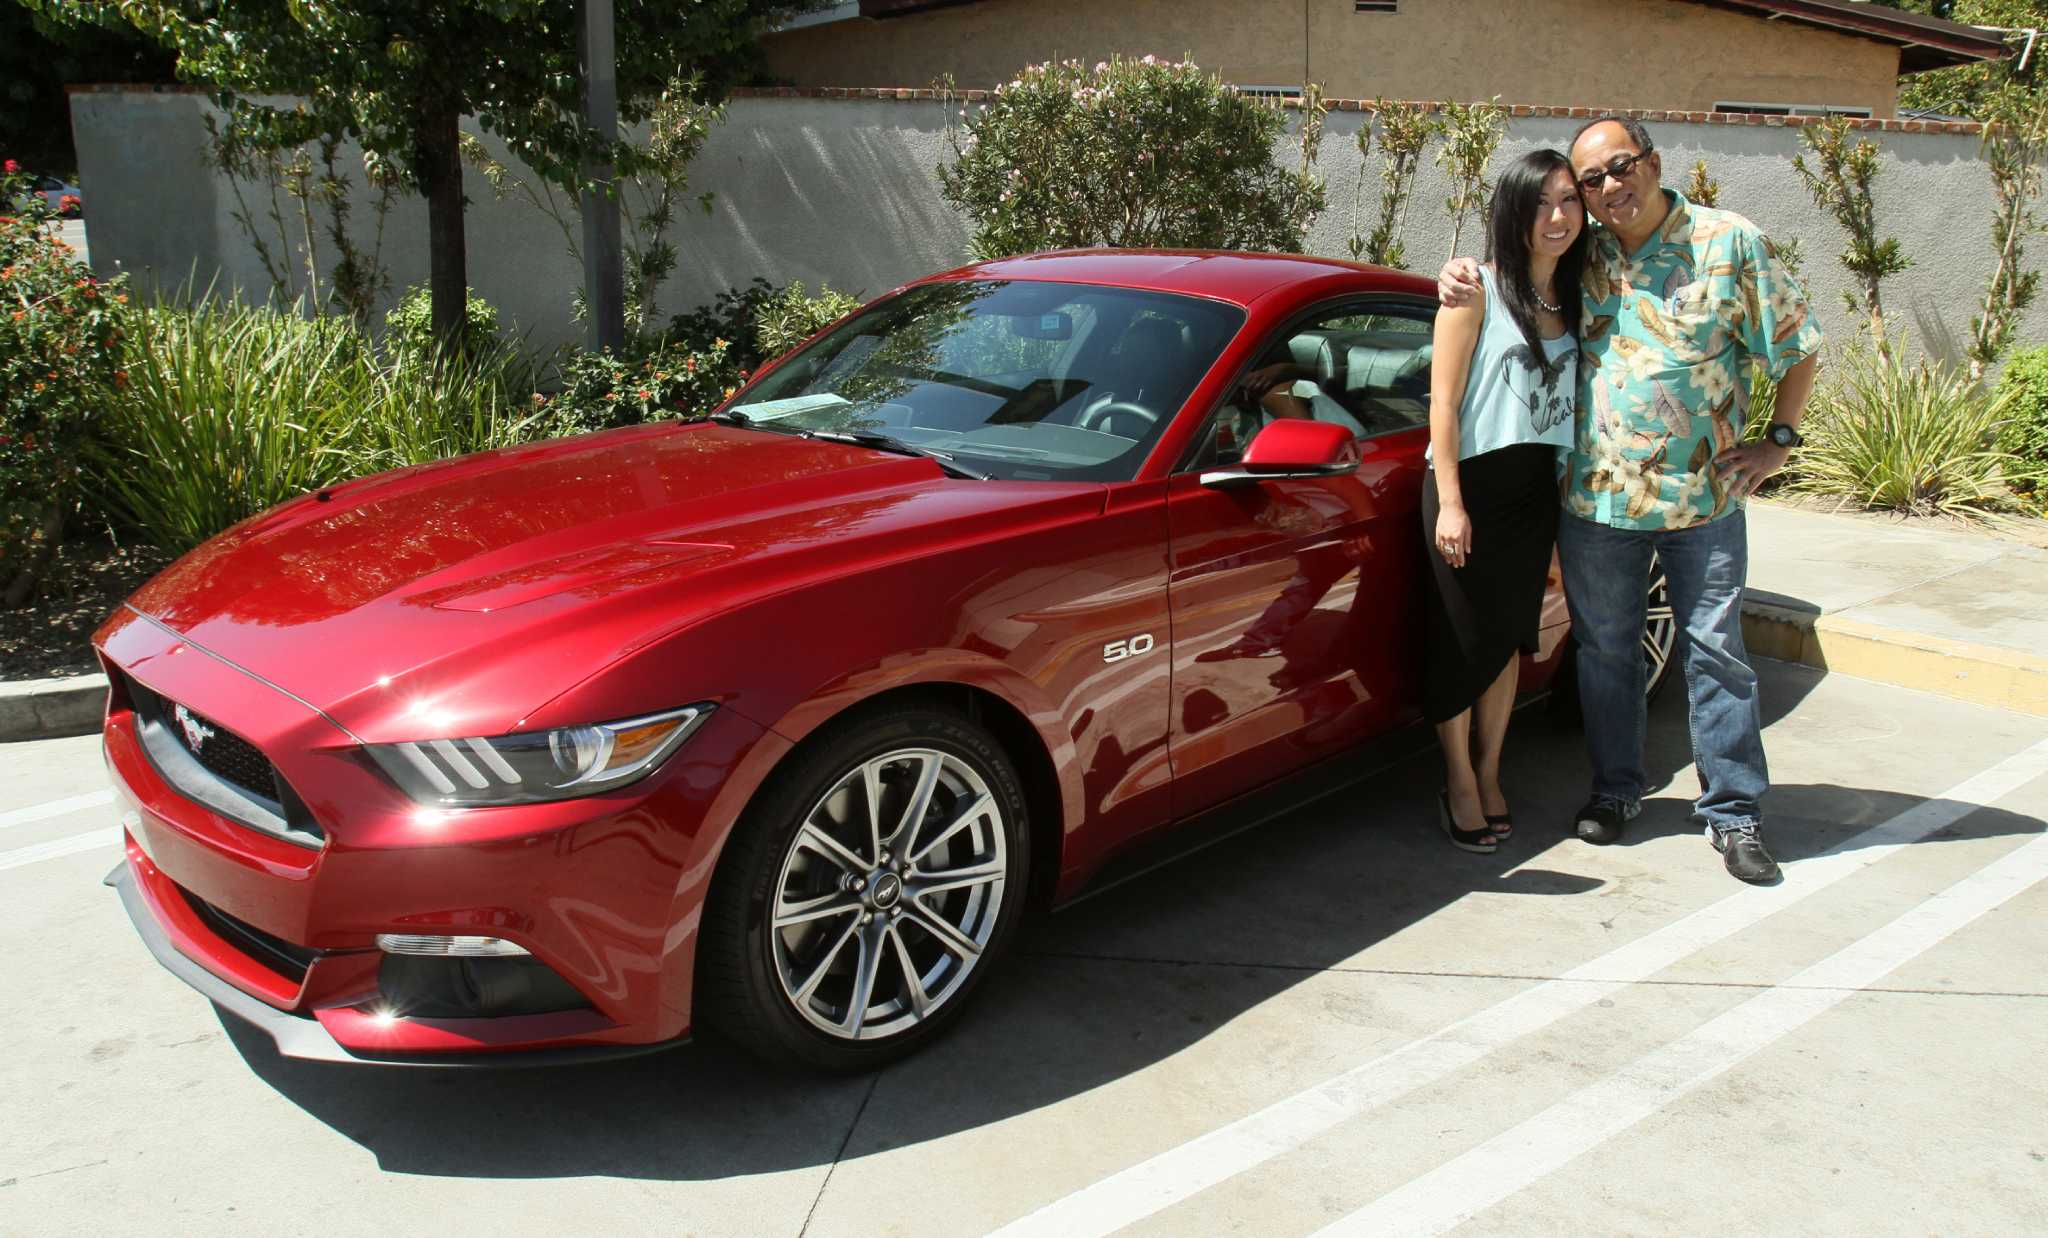 2015 Mustang Ready To Take On The World Houston Chronicle 2003 Ford Fuse Diagram For Pinterest